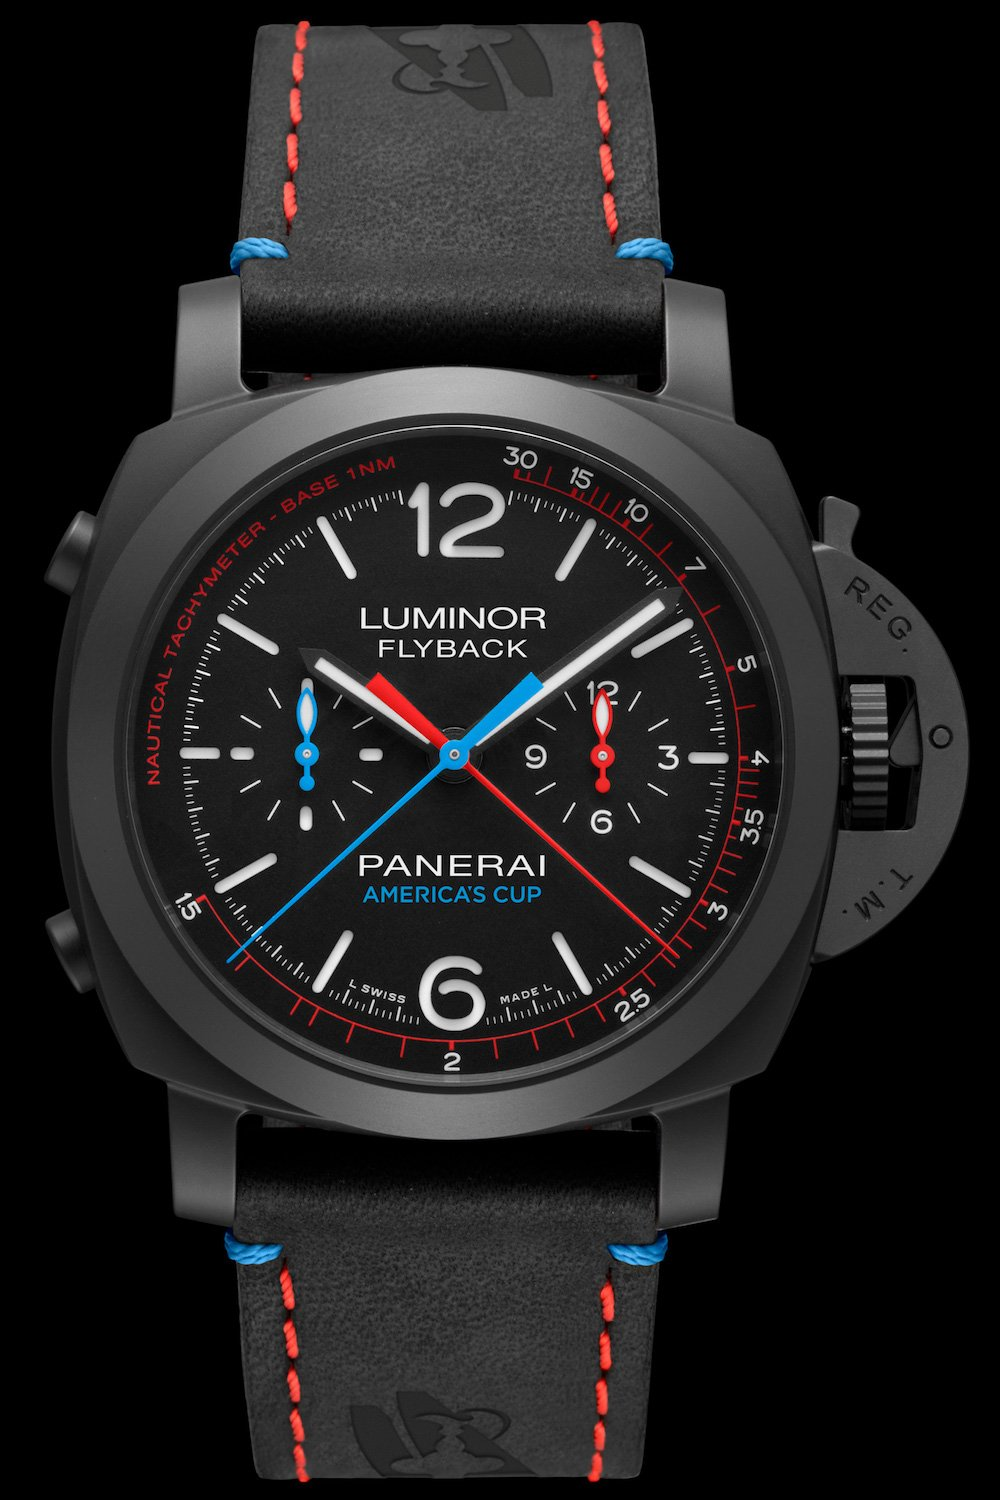 There is a limited amount of the Panerai Luminor Flyback.